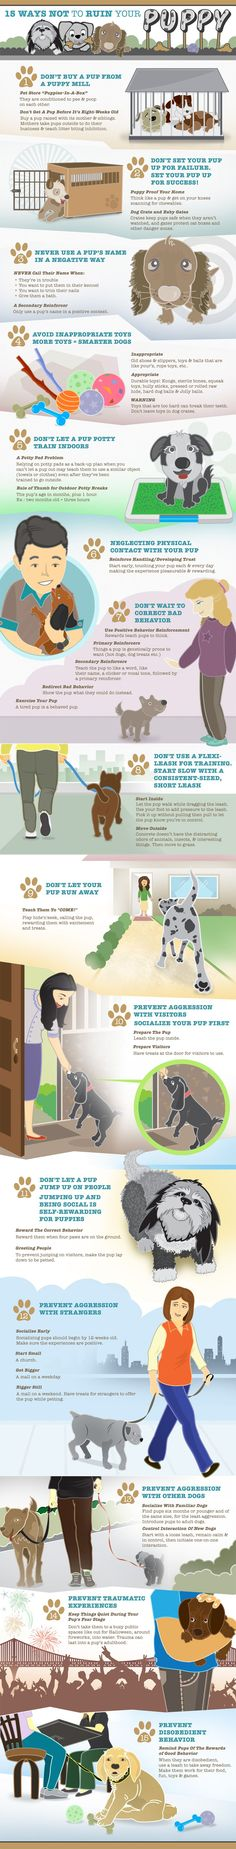 15 Ways Not To Ruin Your Puppy